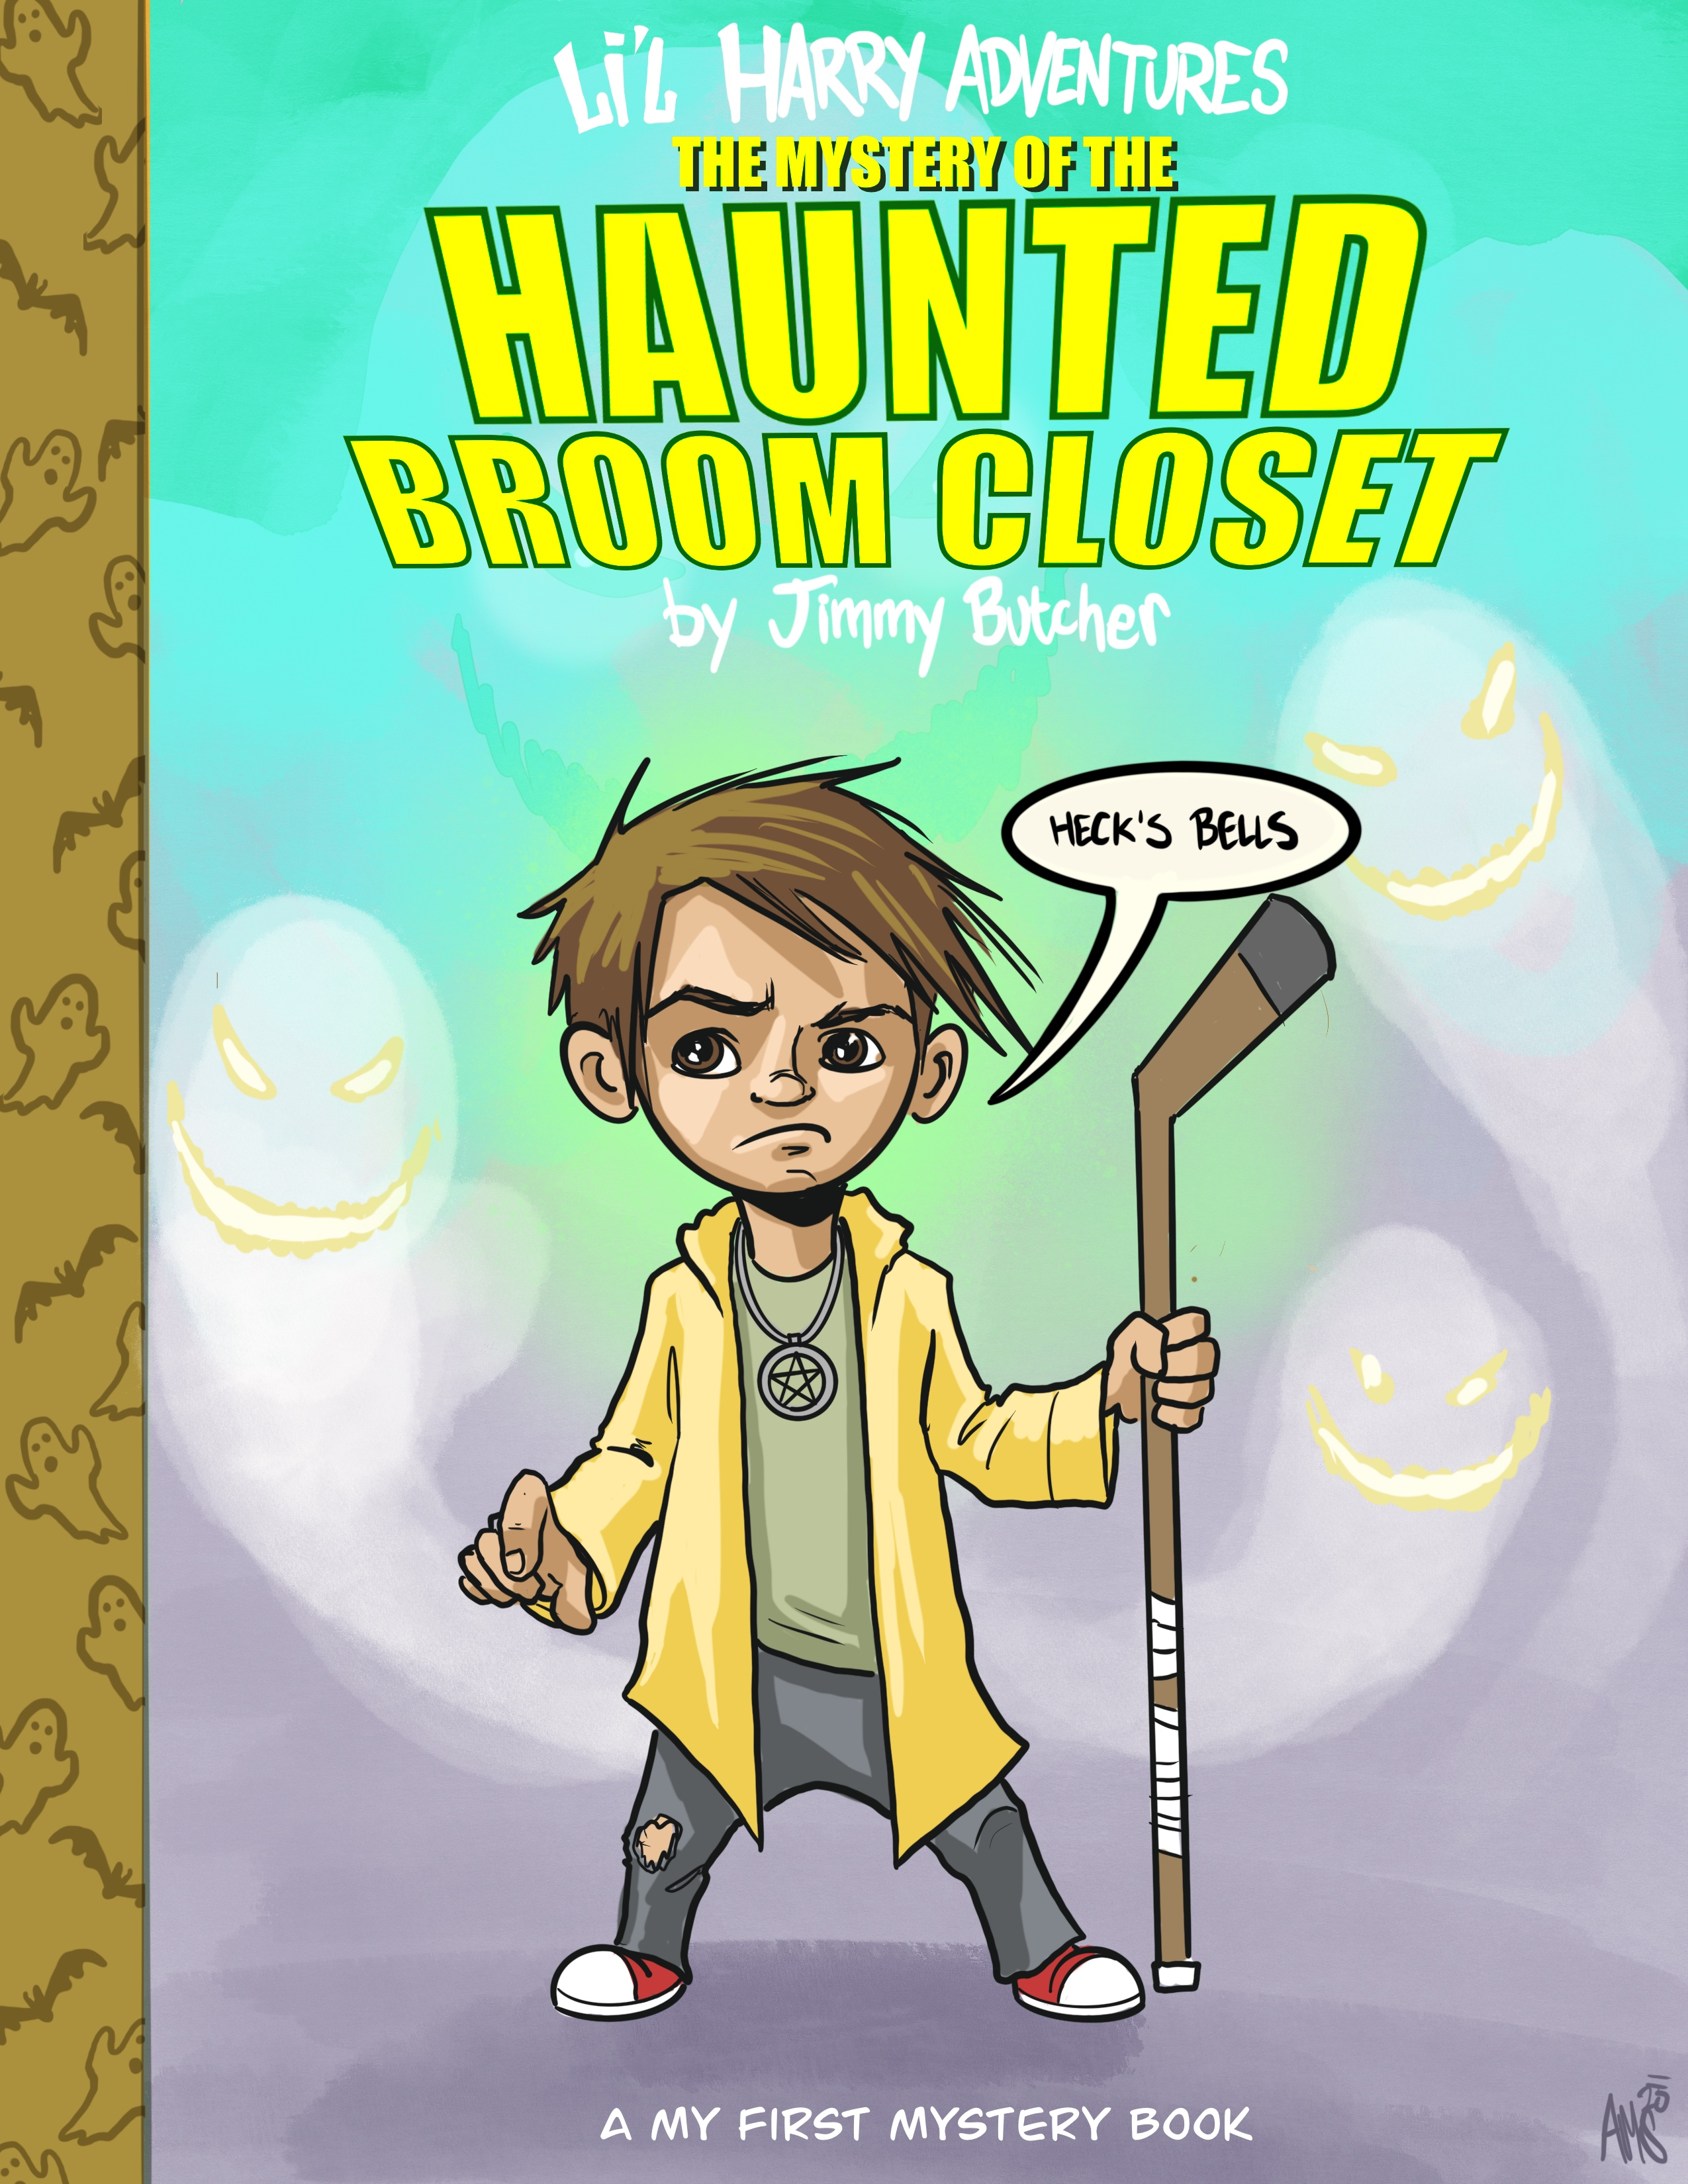 Li'l Harry Adventures: The Mystery of the Haunted Brook Closet